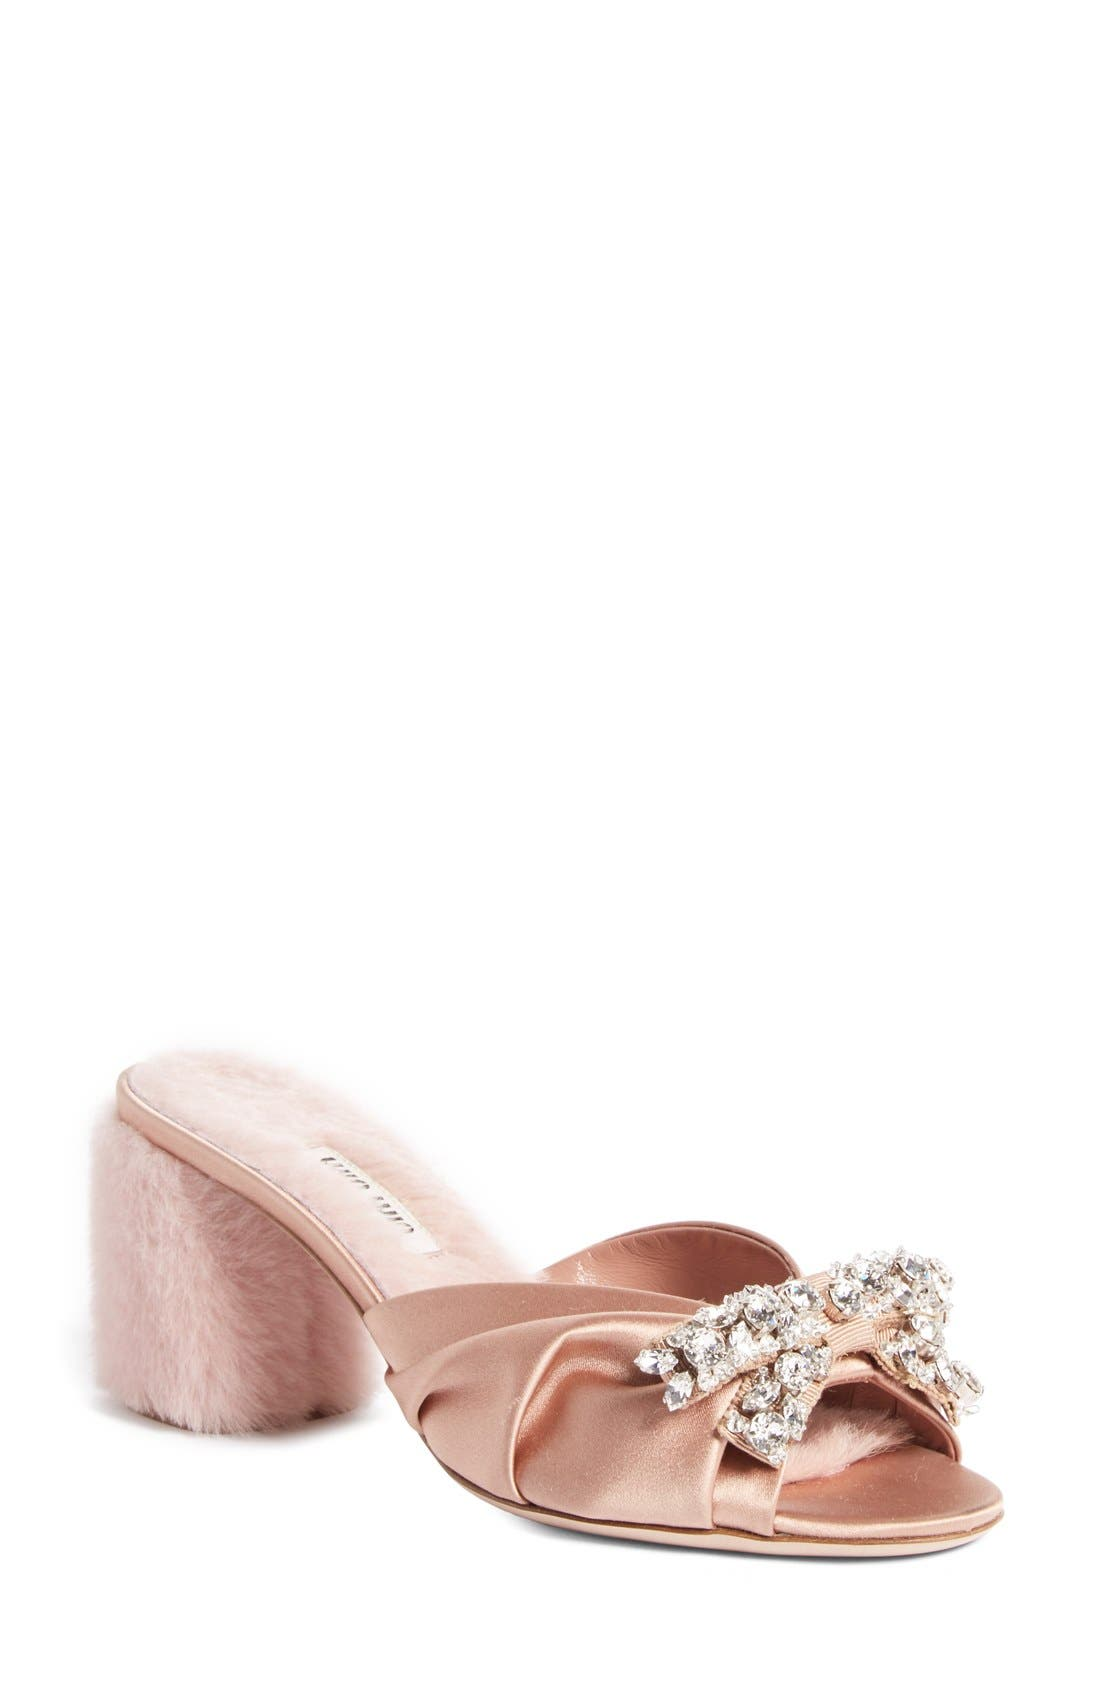 Crystal Embellished Slide Sandal,                         Main,                         color, 250